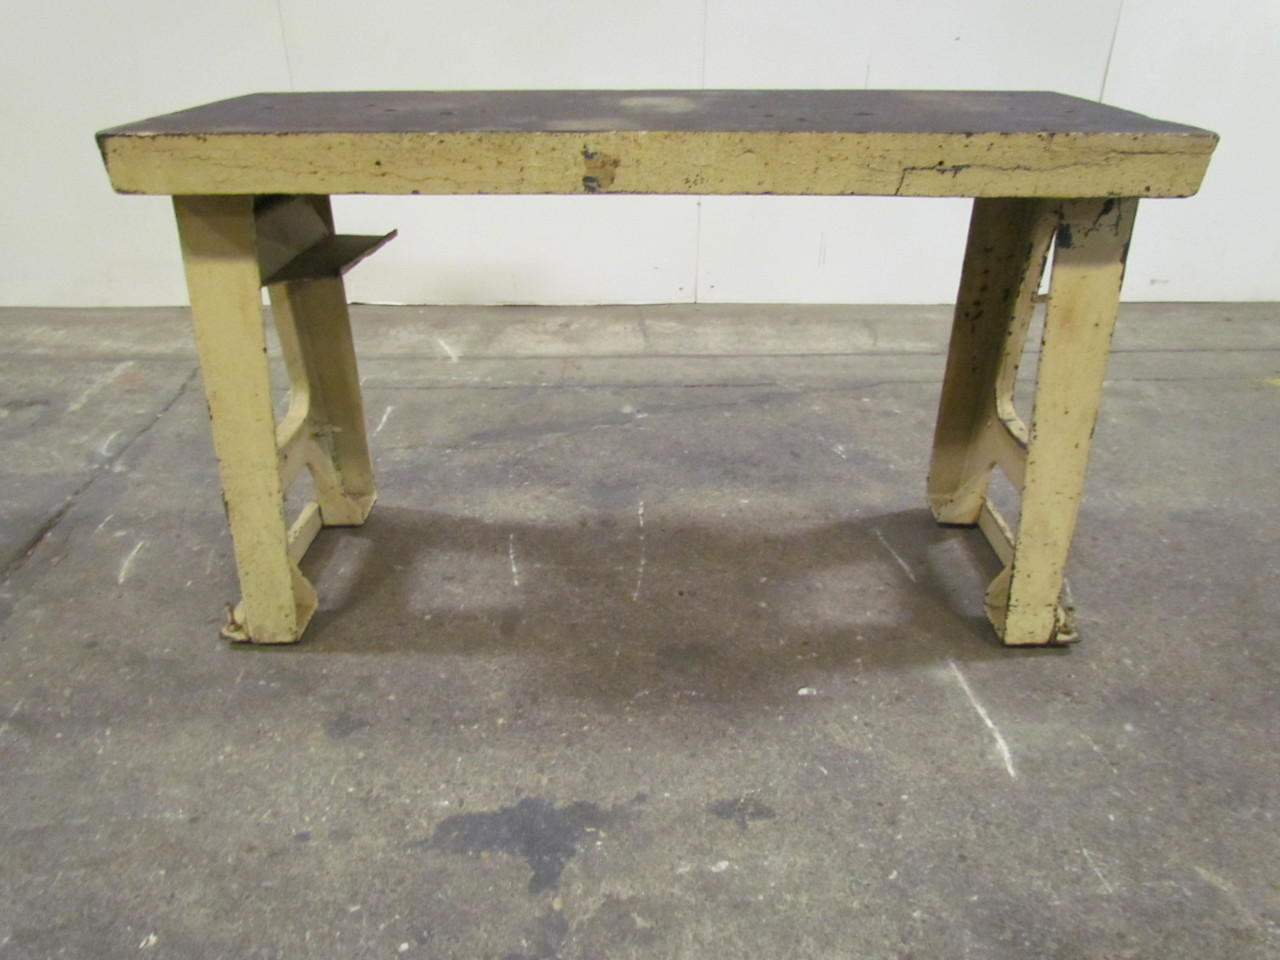 Vintage Yellow 2 Leg Mid Century Industrial Cast Iron Layout Table Workbench Bullseye